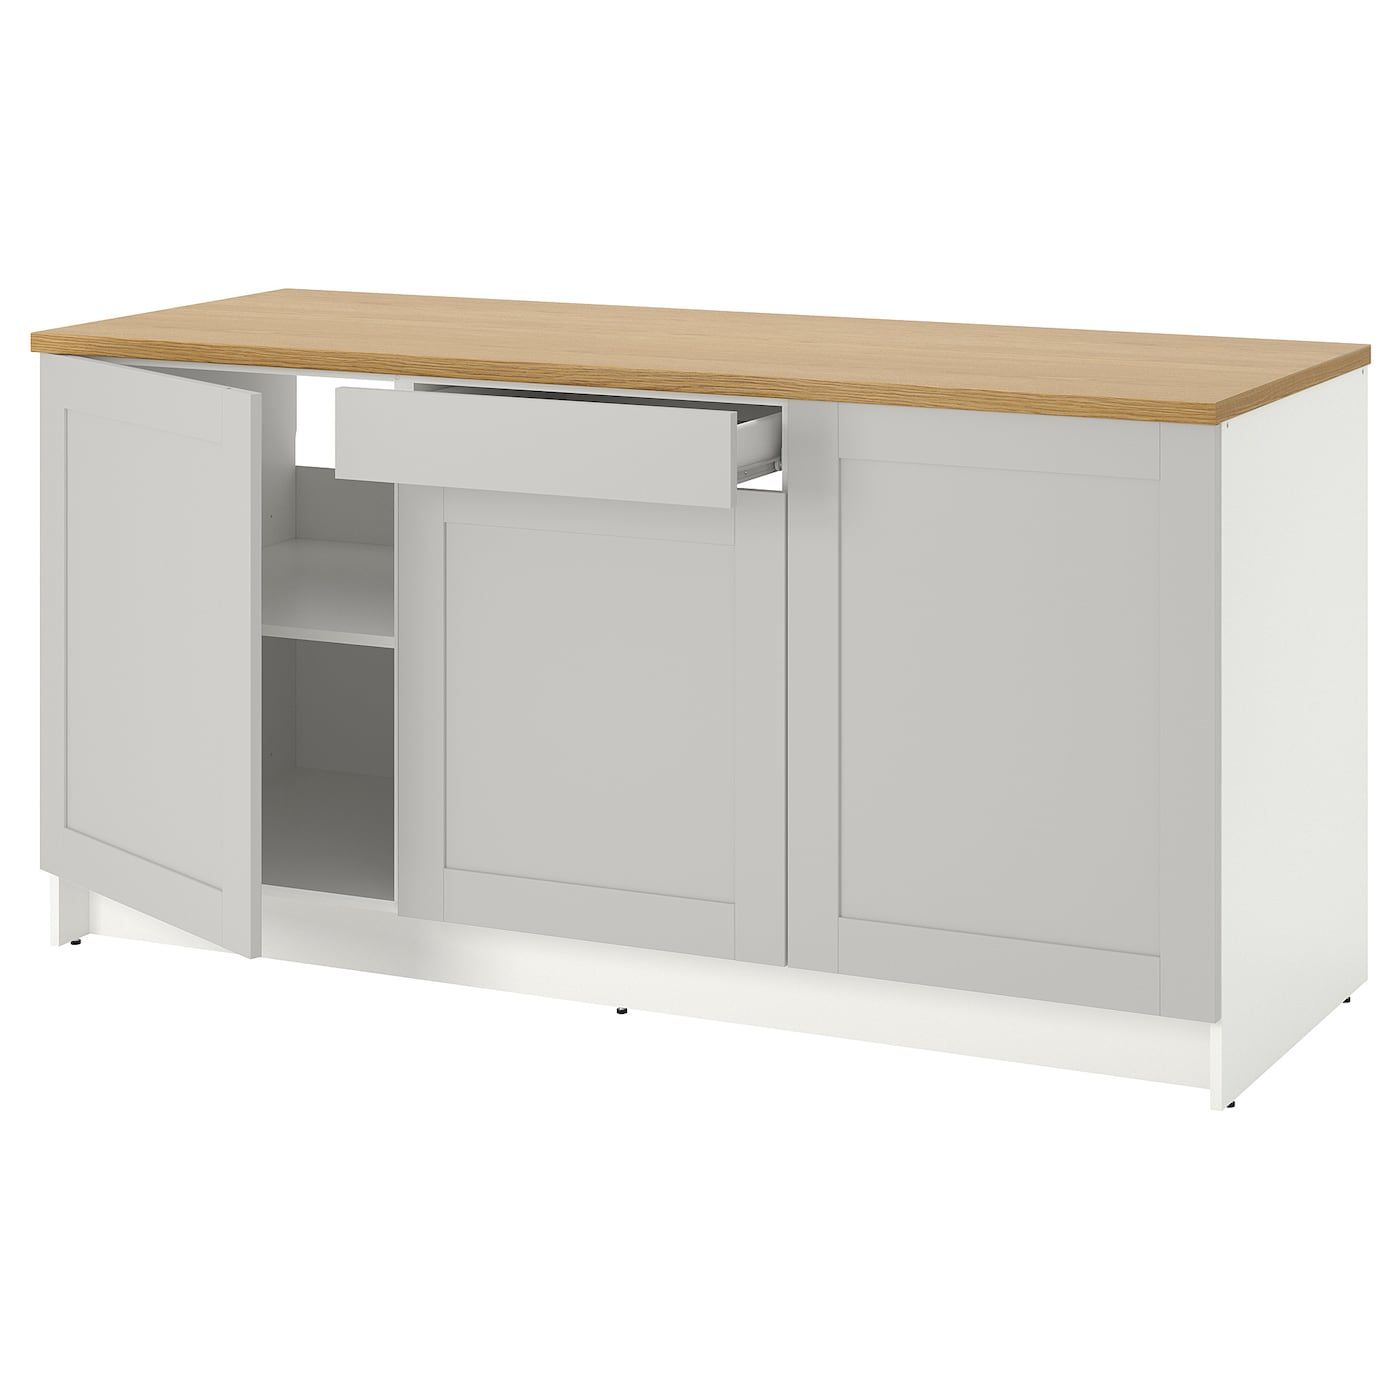 Knoxhult Base Cabinet With Doors And